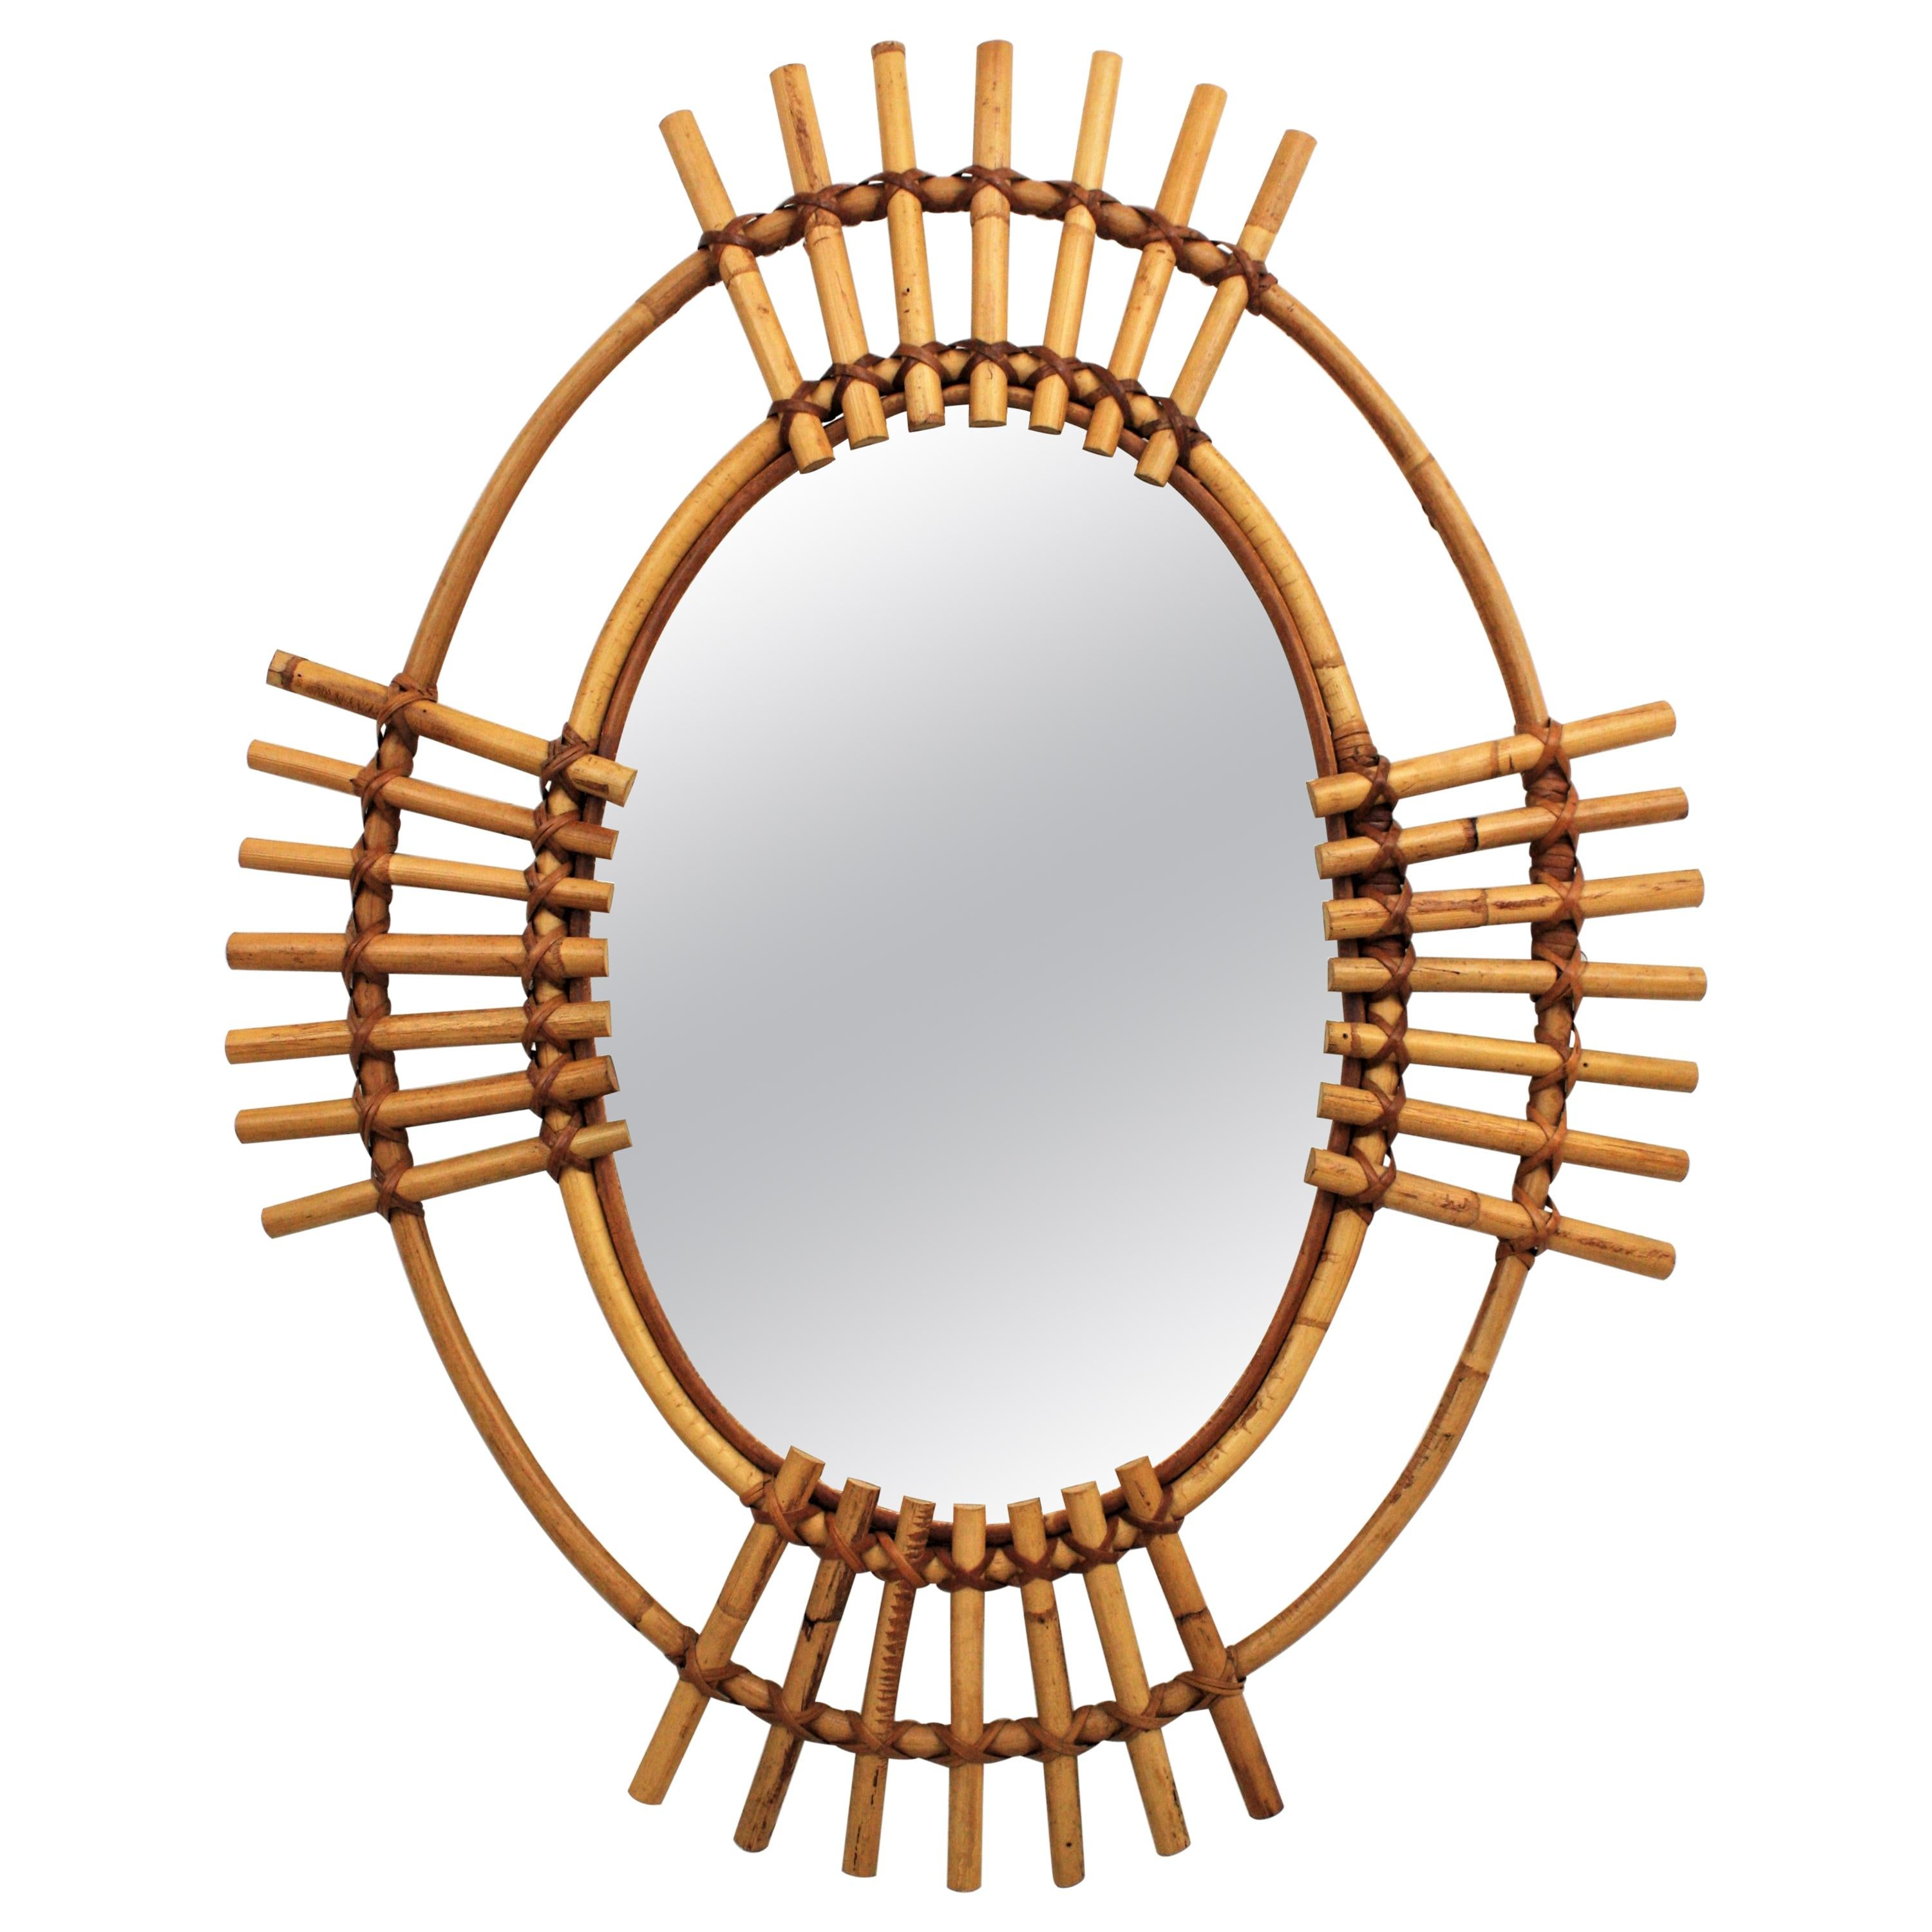 Bamboo and Rattan Oval Sunburst Mirror from Spain